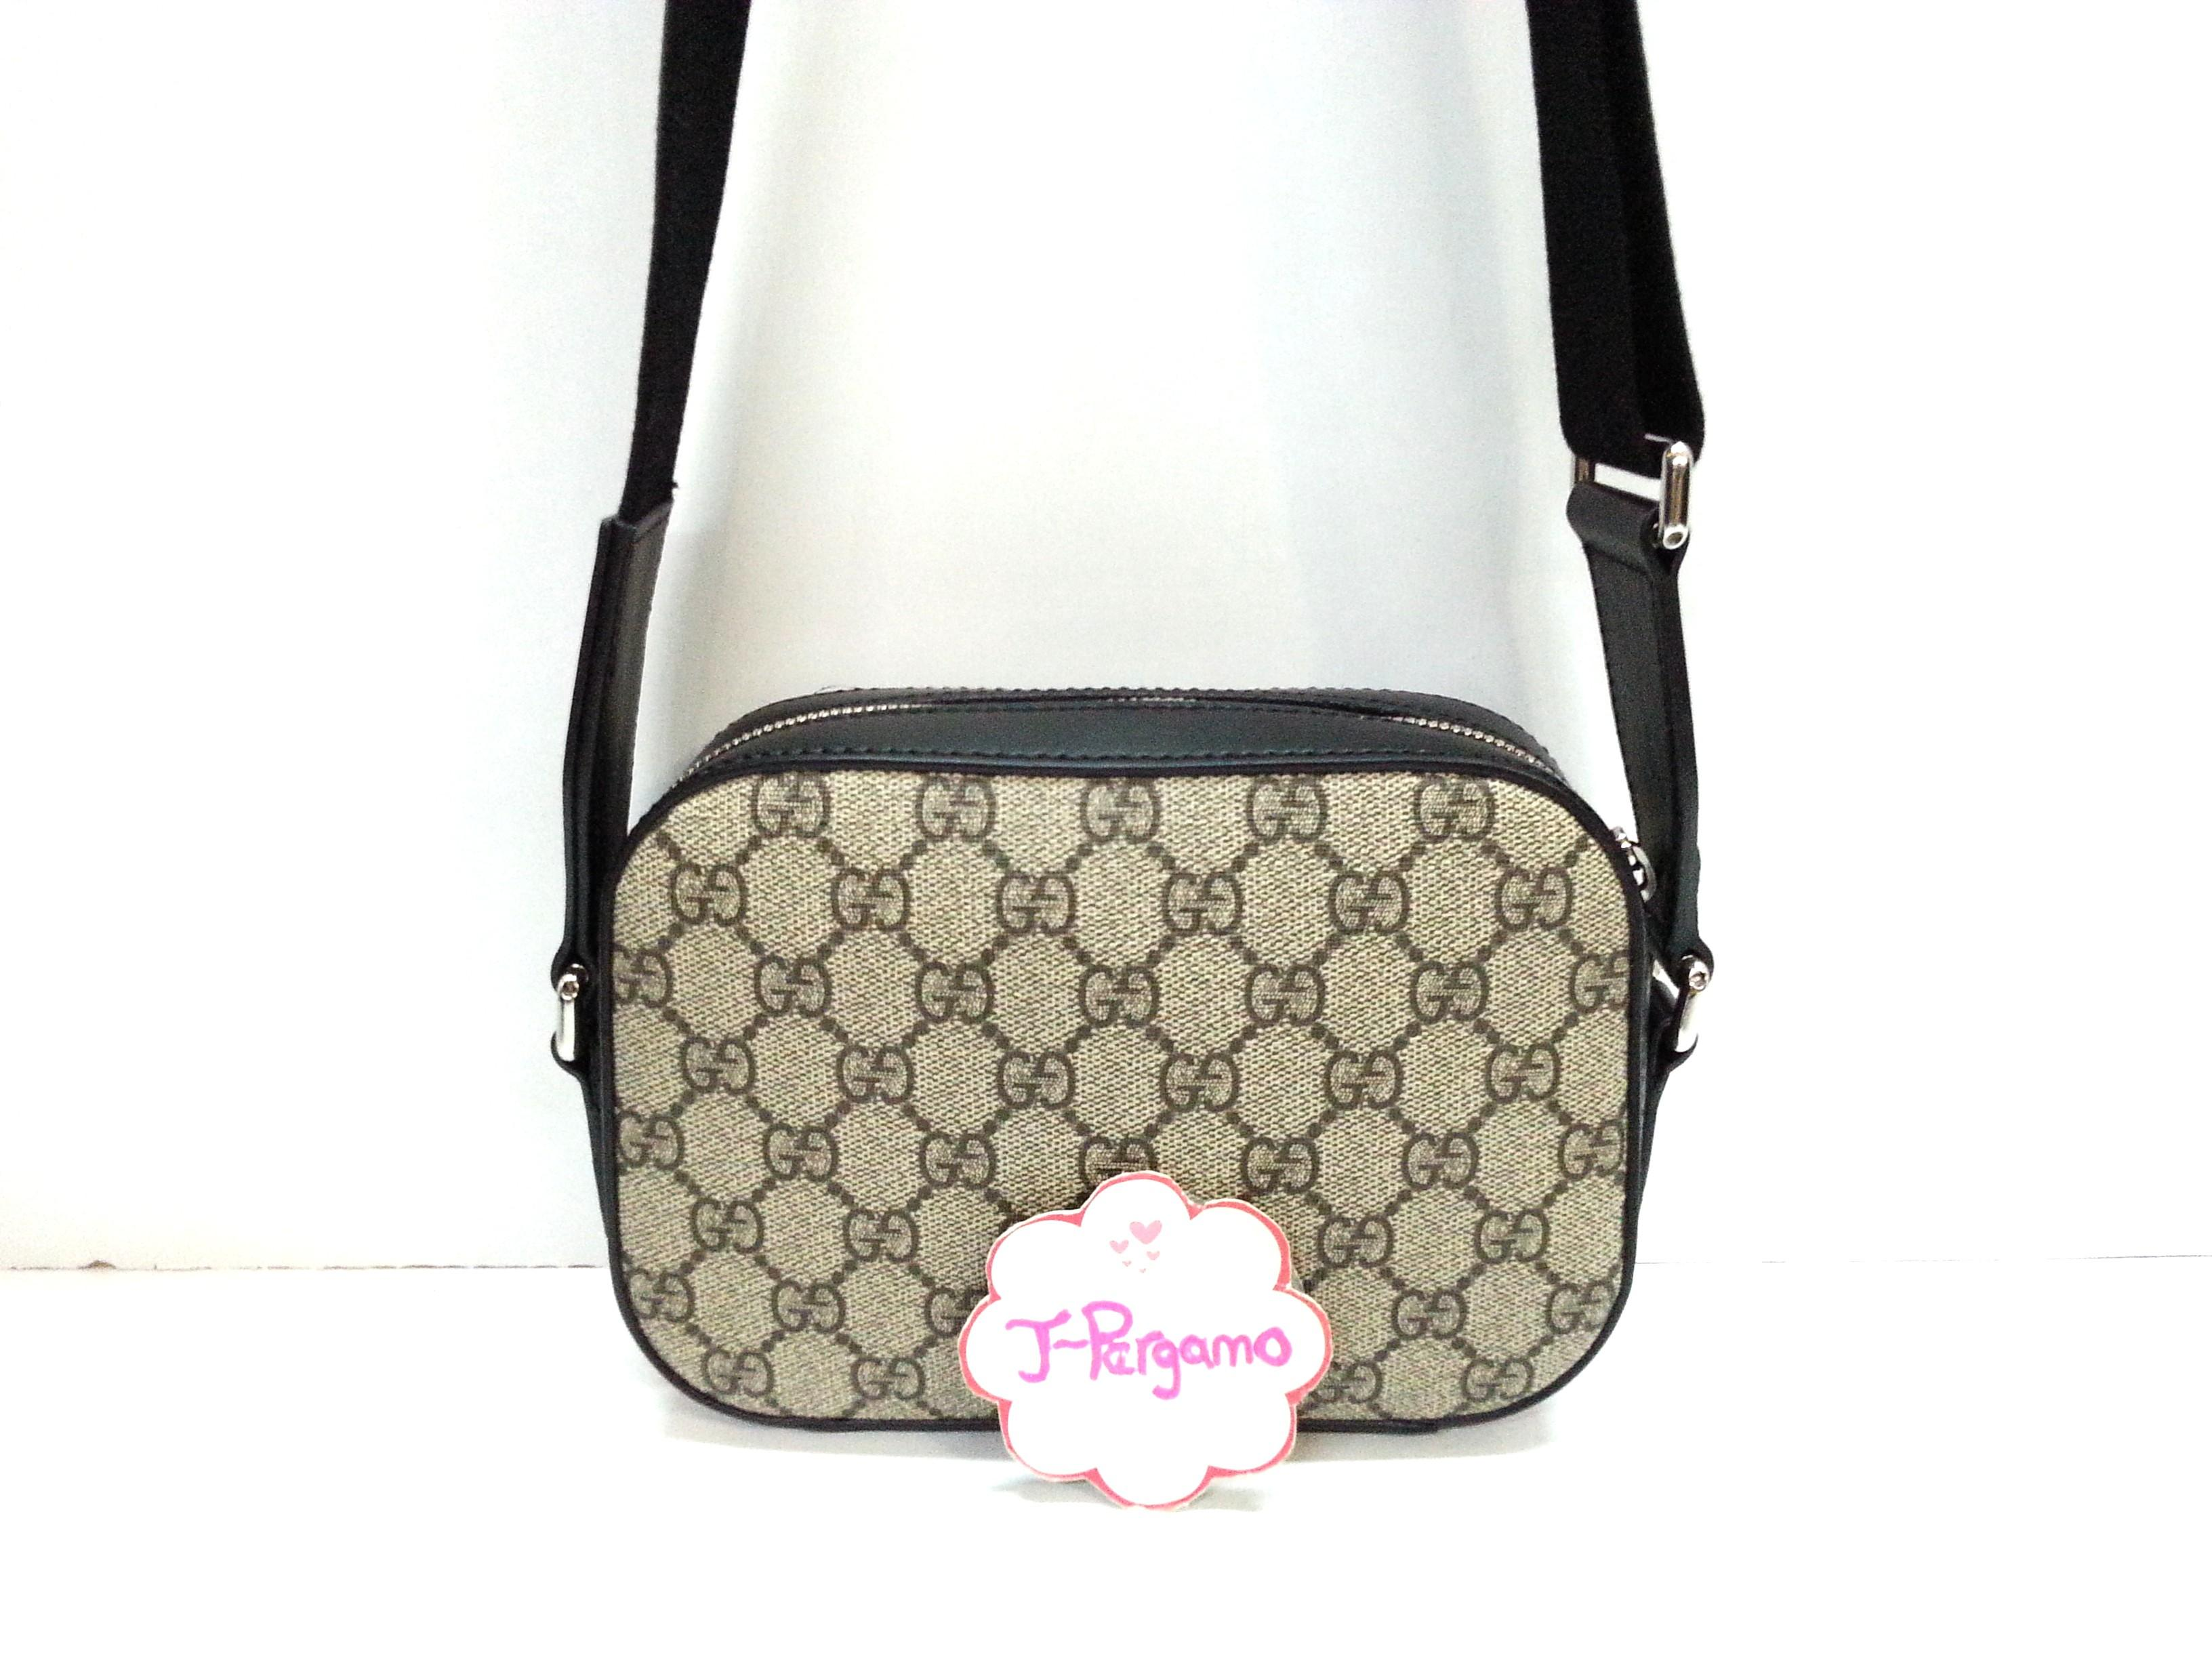 Authentic Gucci GG Supreme Mini Sling Bag {{Only For Sale}} **No Trade ** {{Fixed Price Non-Neg}} ** 定价 **